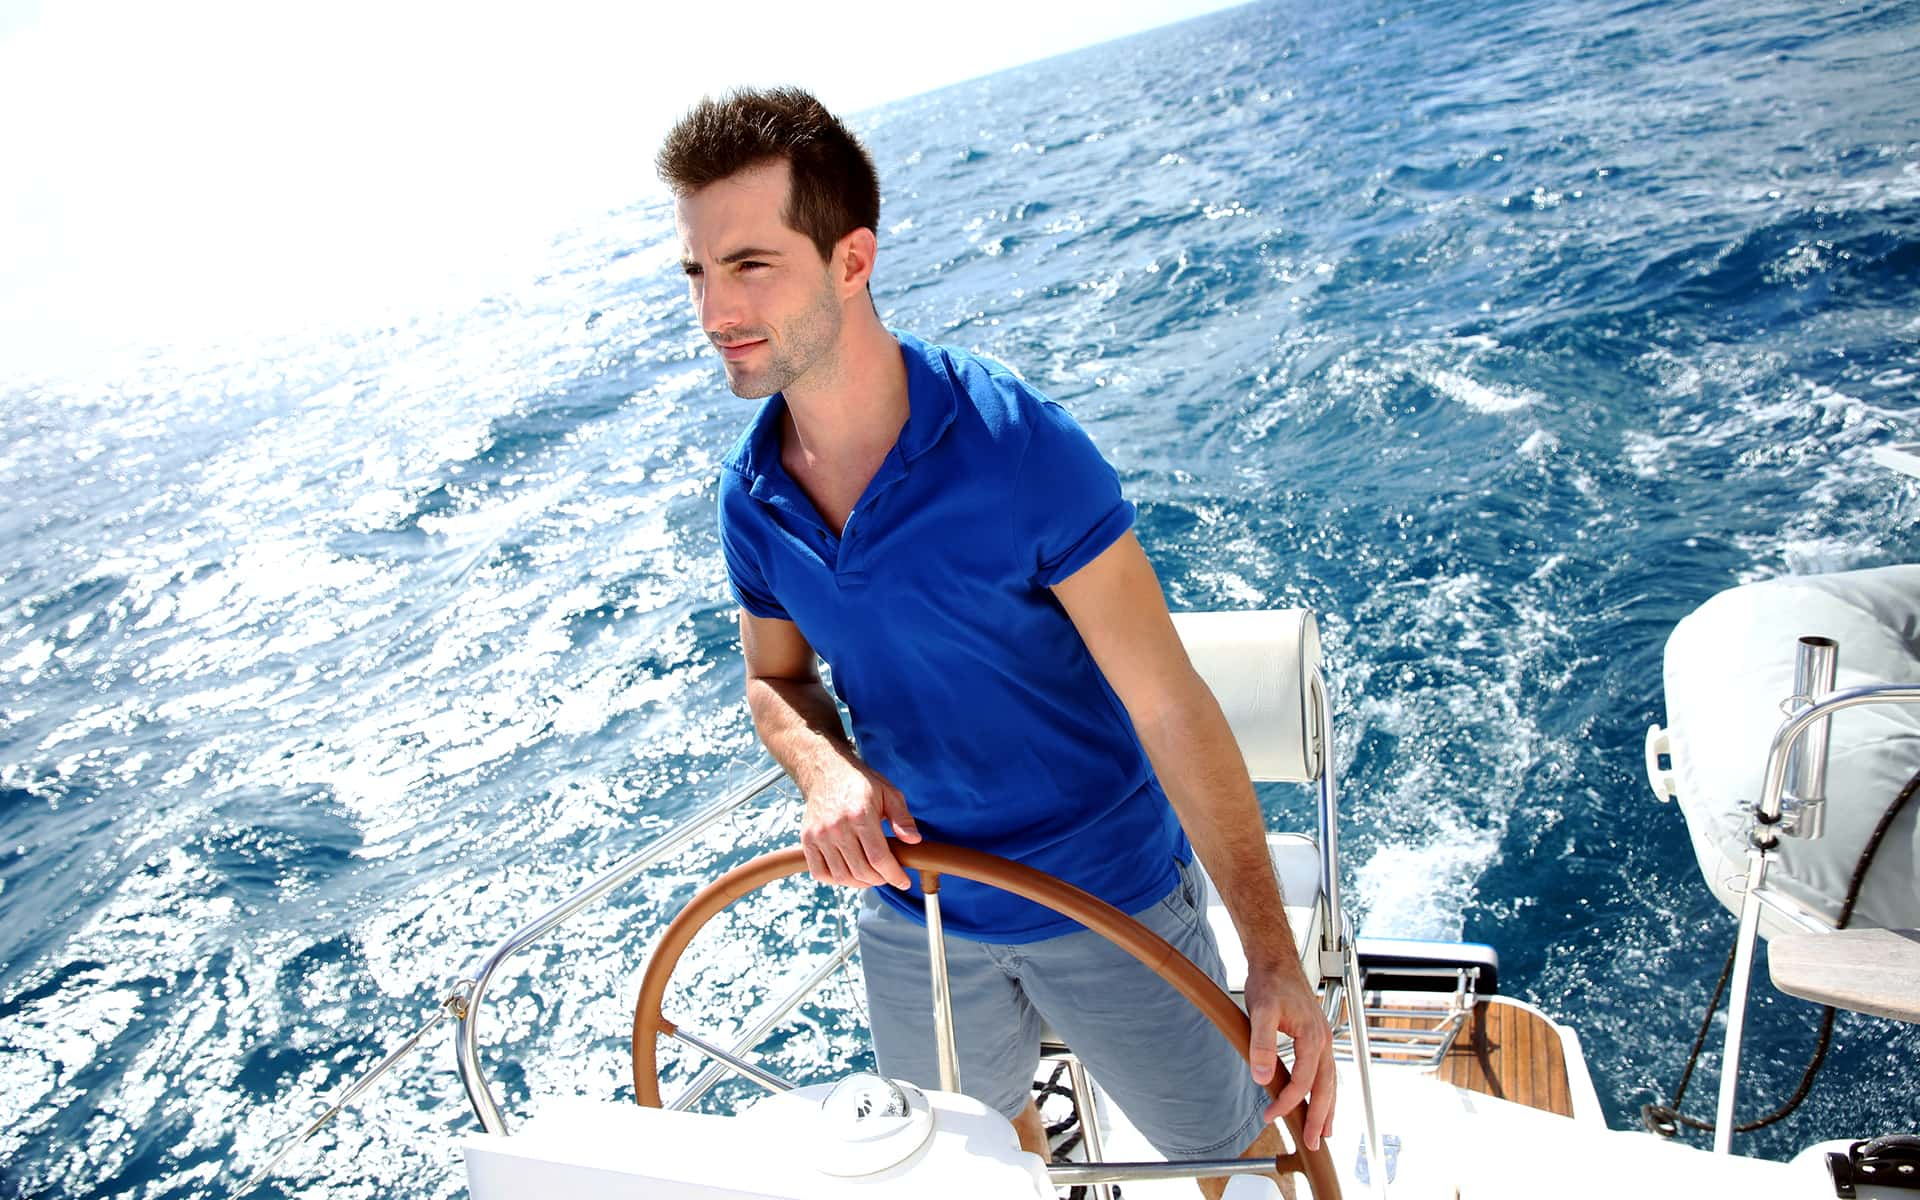 Targeted Processes with Process Governance - sailor at his steering wheel